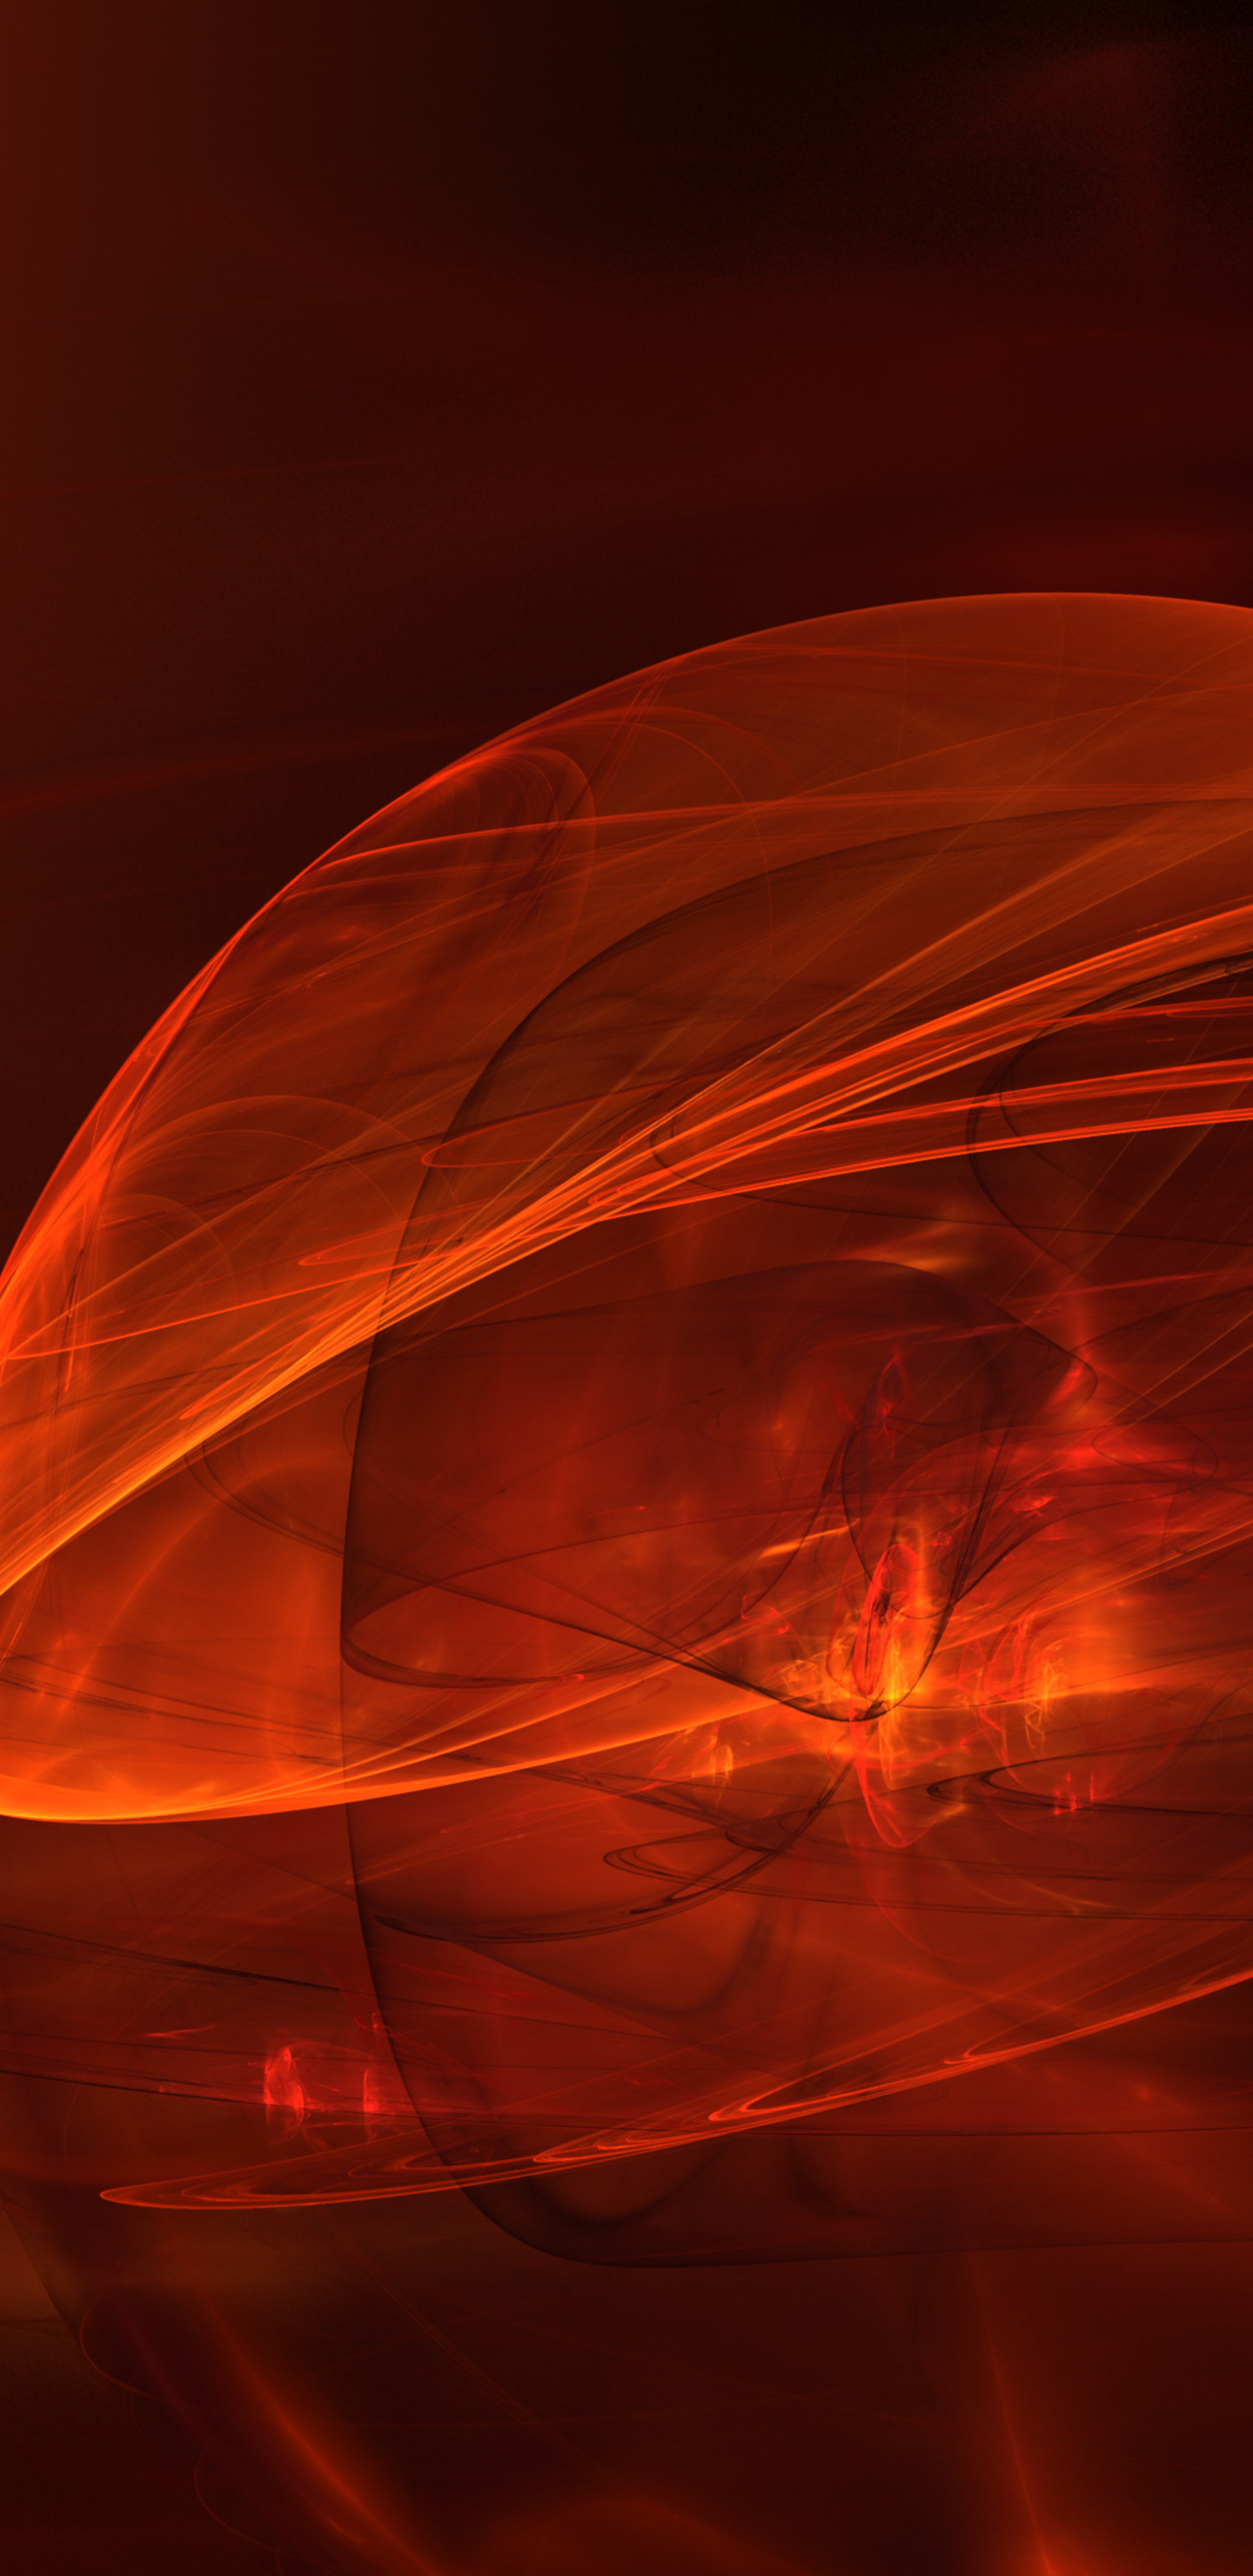 1440x2960 3d fractal abstract orange 4k samsung galaxy note 9 8 s9 s8 s8 qhd hd 4k wallpapers - 3d wallpaper for note 8 ...